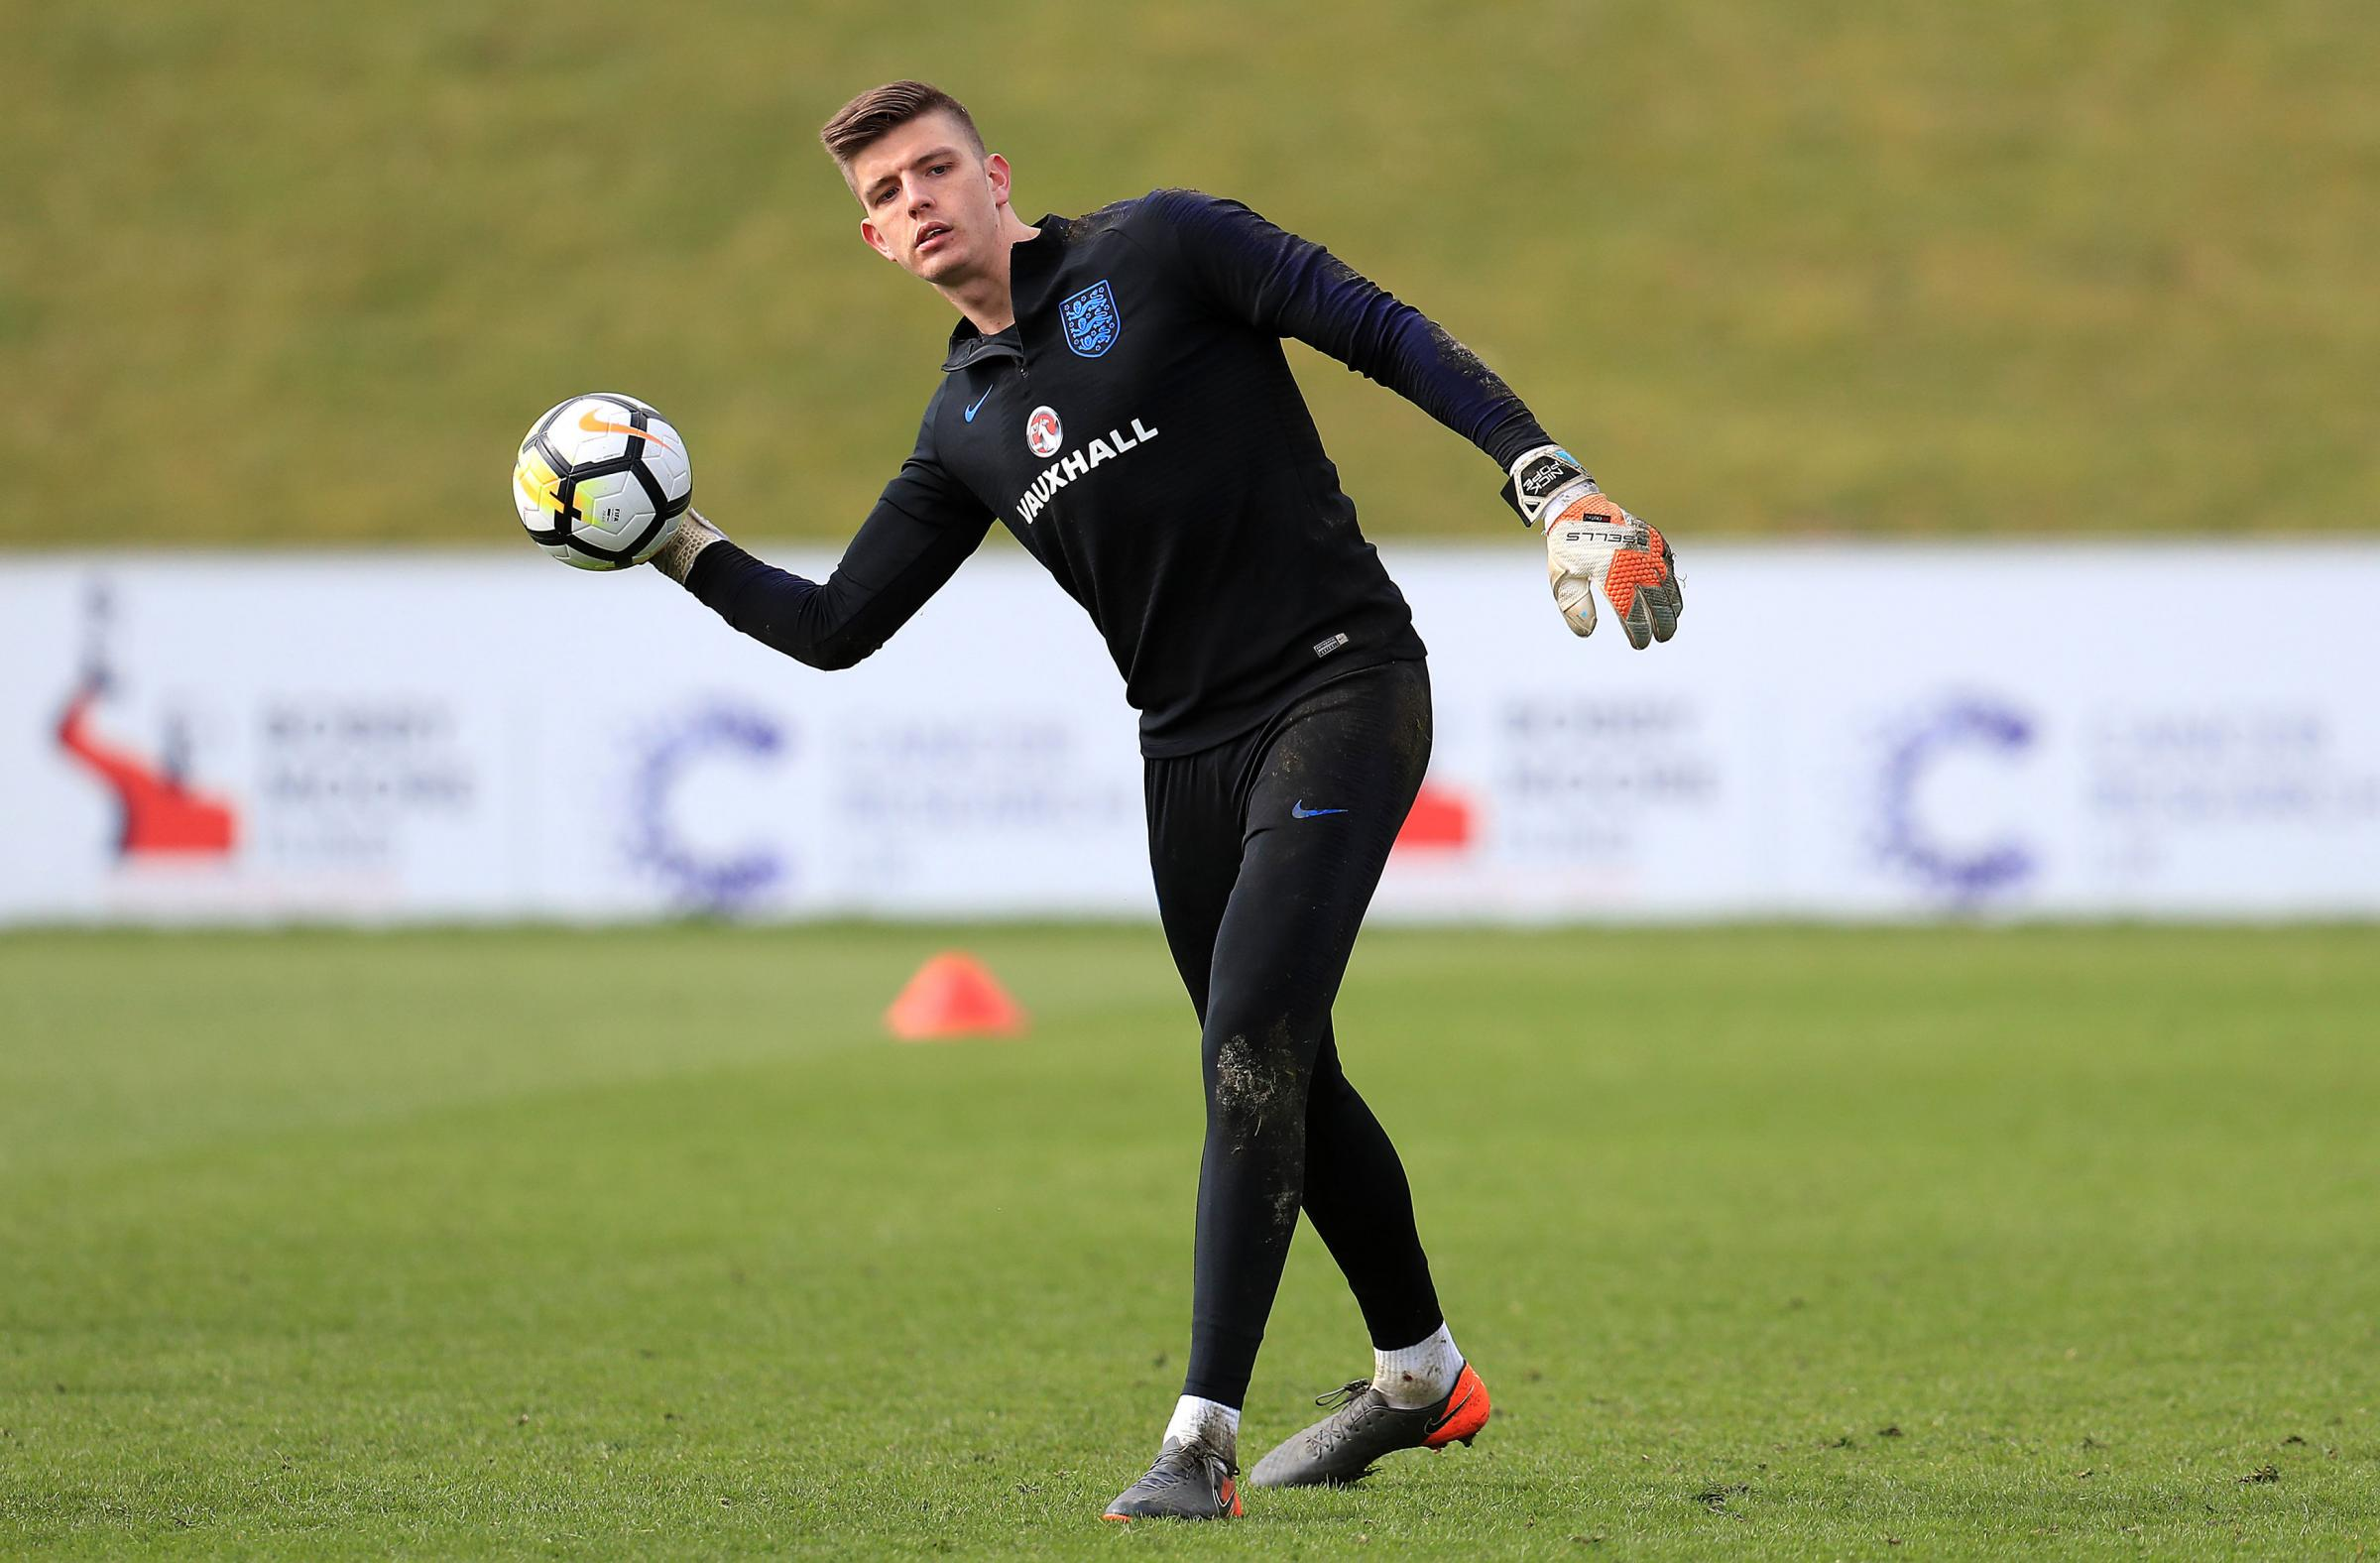 Former Claret Chris Pearce believes Nick Pope should be England's No. 1 in Russia